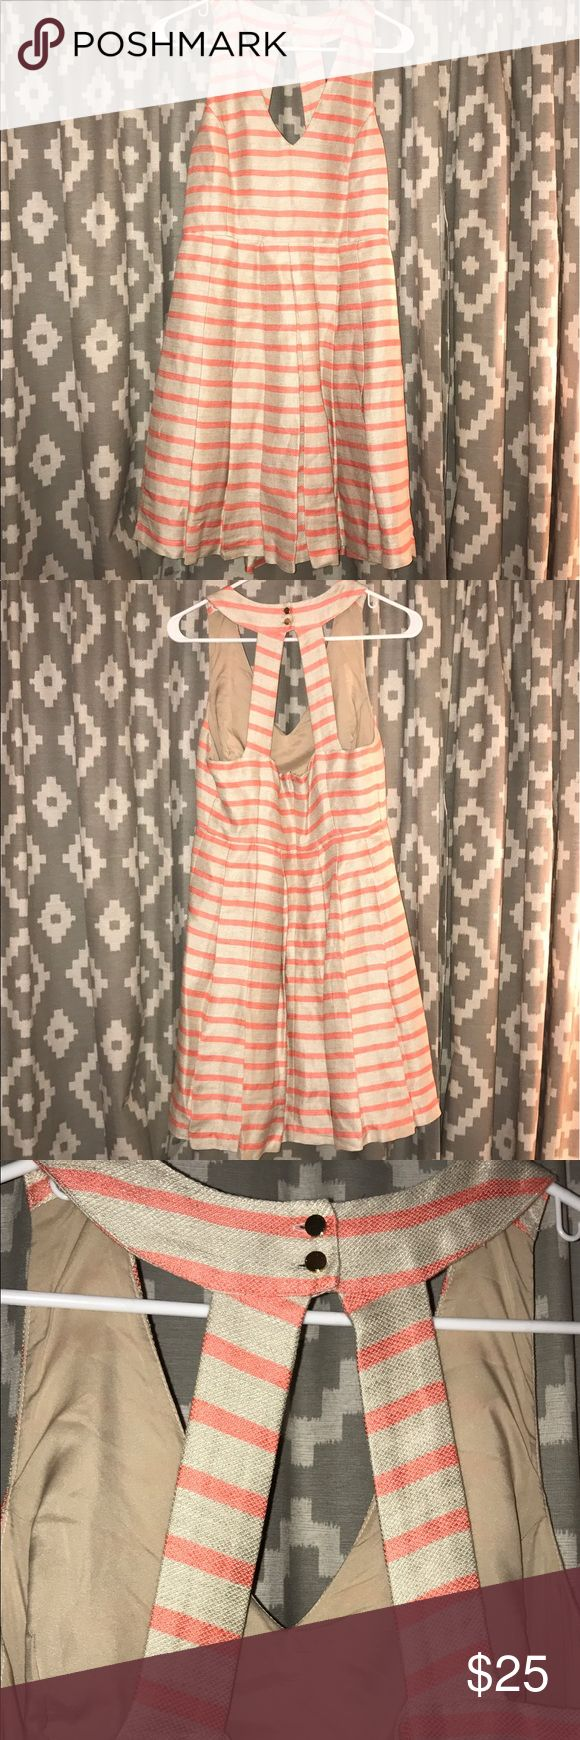 "Banana Republic linen stripe cocktail dress 8 Banana Republic linen stripe cocktail dress. Size 8. Fun back detail with gold buttons. Pleated. No flaws. 35"" long. Lined. Thanks for looking! Banana Republic Dresses"